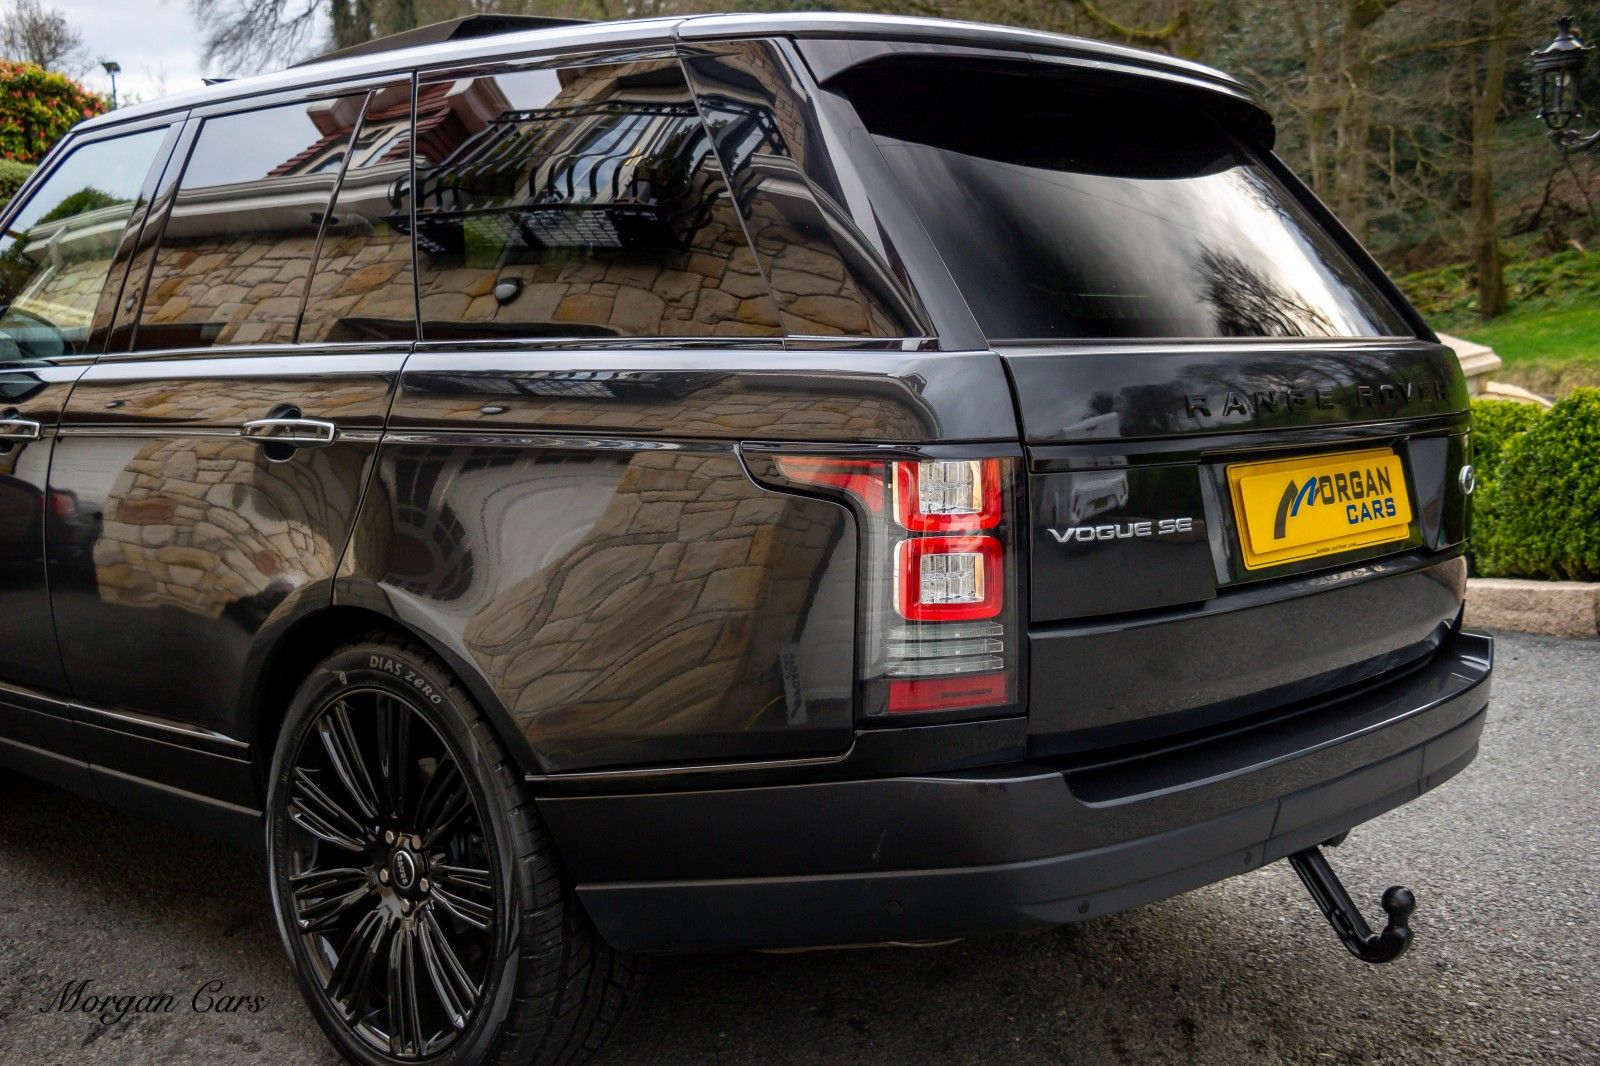 2014 Land Rover Range Rover 3.0 TDV6 VOGUE SE Diesel Automatic – Morgan Cars 9 Mound Road, Warrenpoint, Newry BT34 3LW, UK full